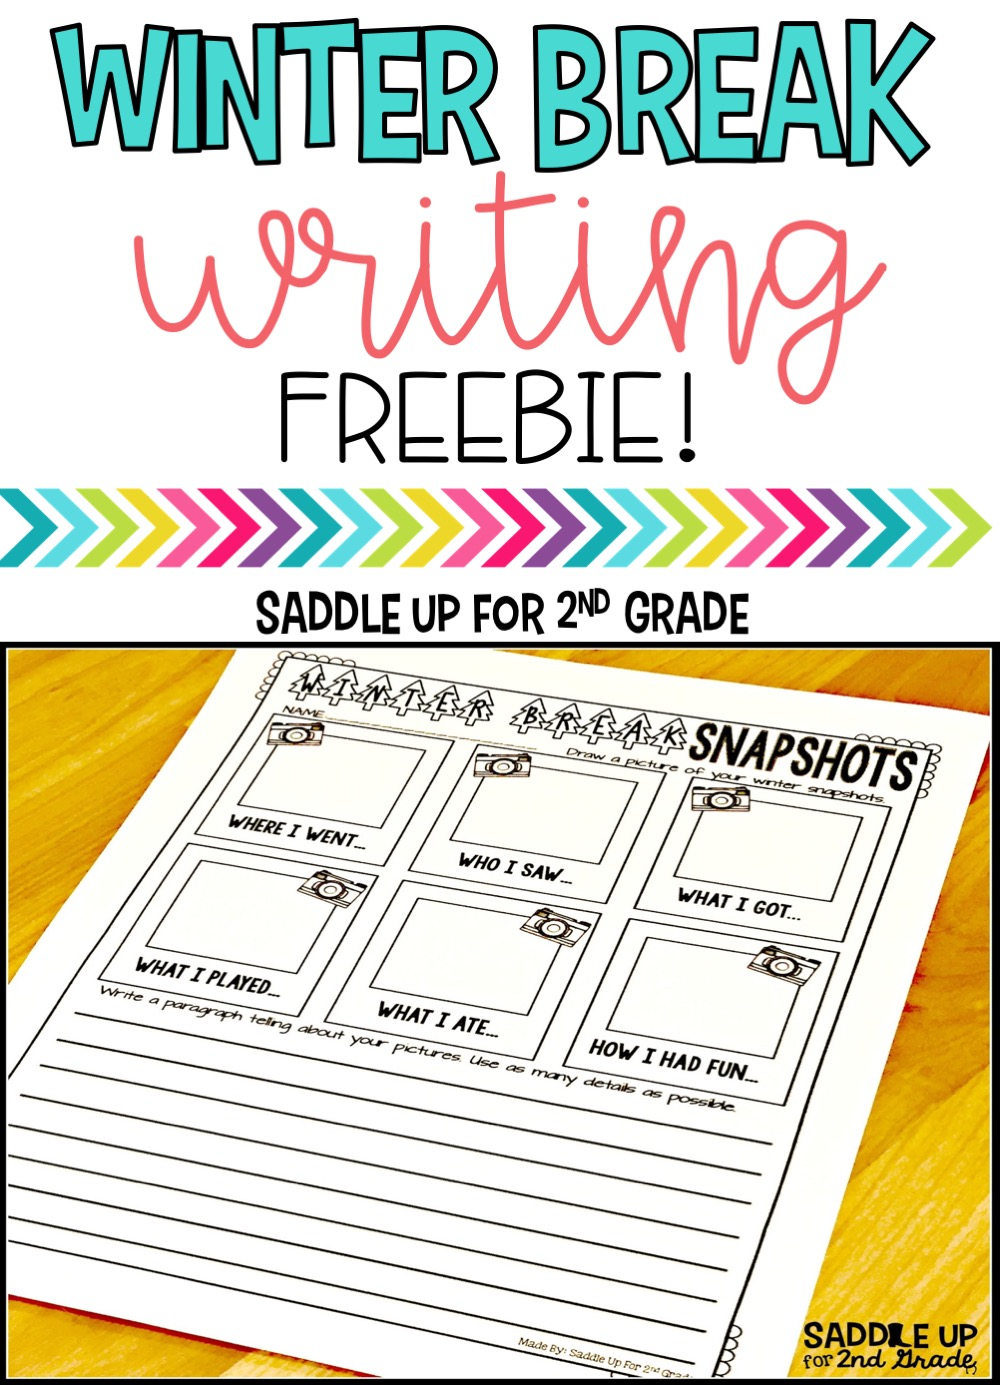 Grab this FREE Winter Break writing activity to use with your class when they return from Christmas break. It is perfect to use during the month of January.